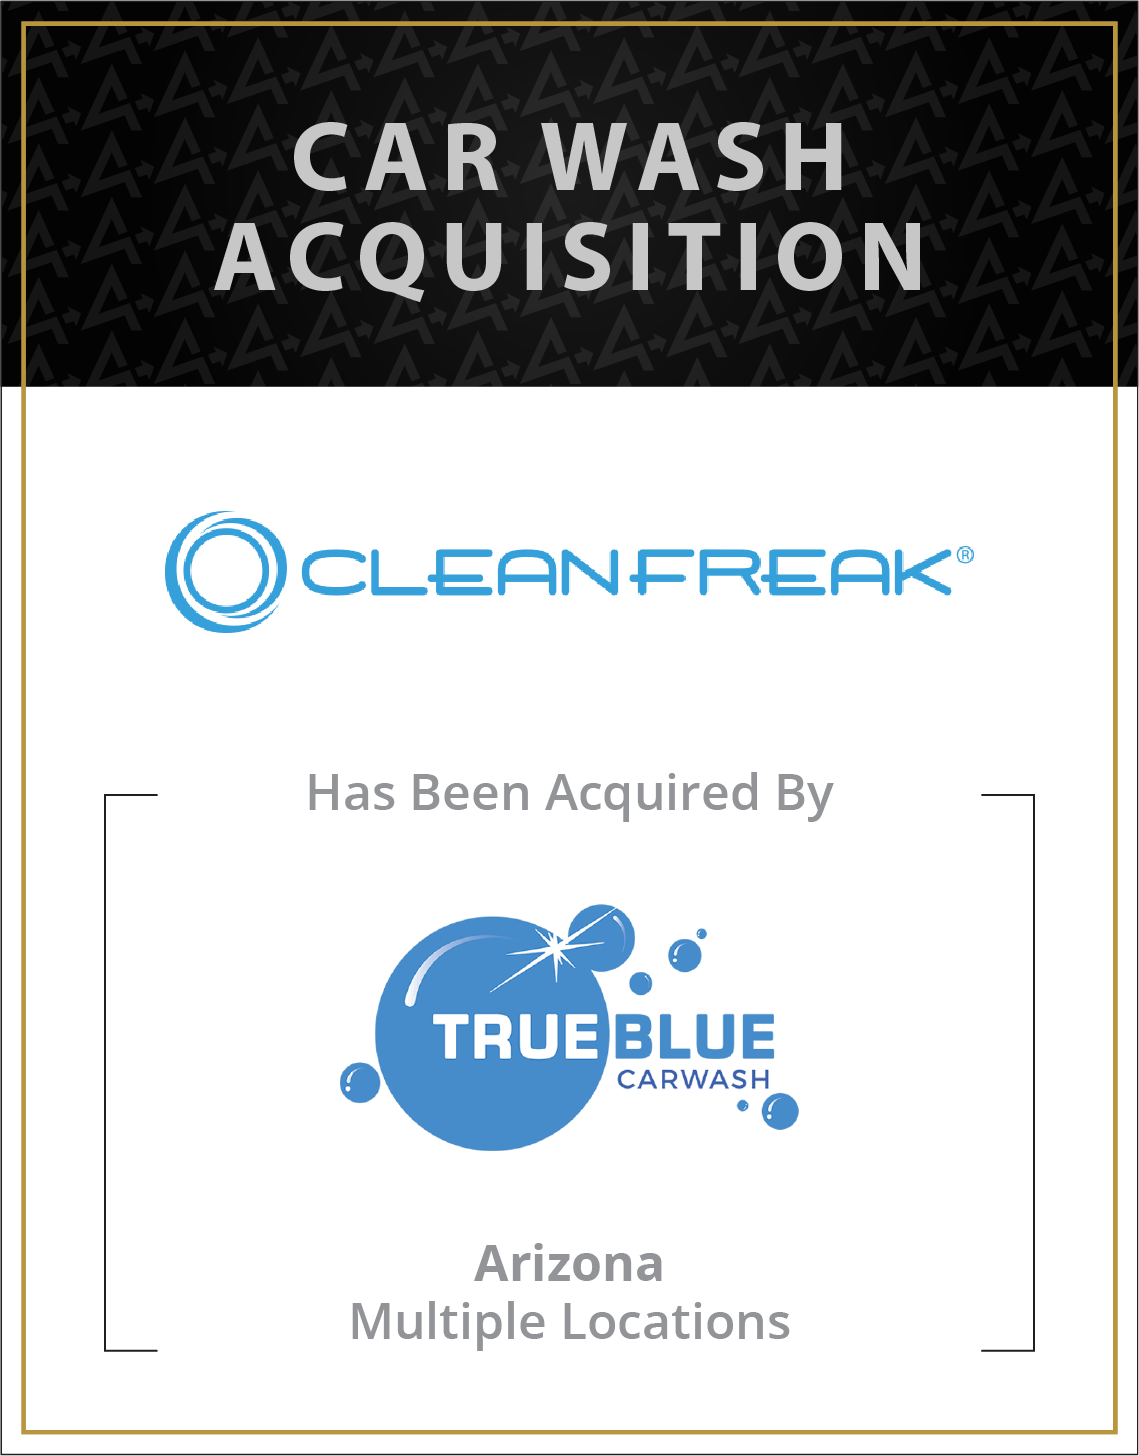 CleanFreak Car Wash has been acquired by True Blue Car Wash